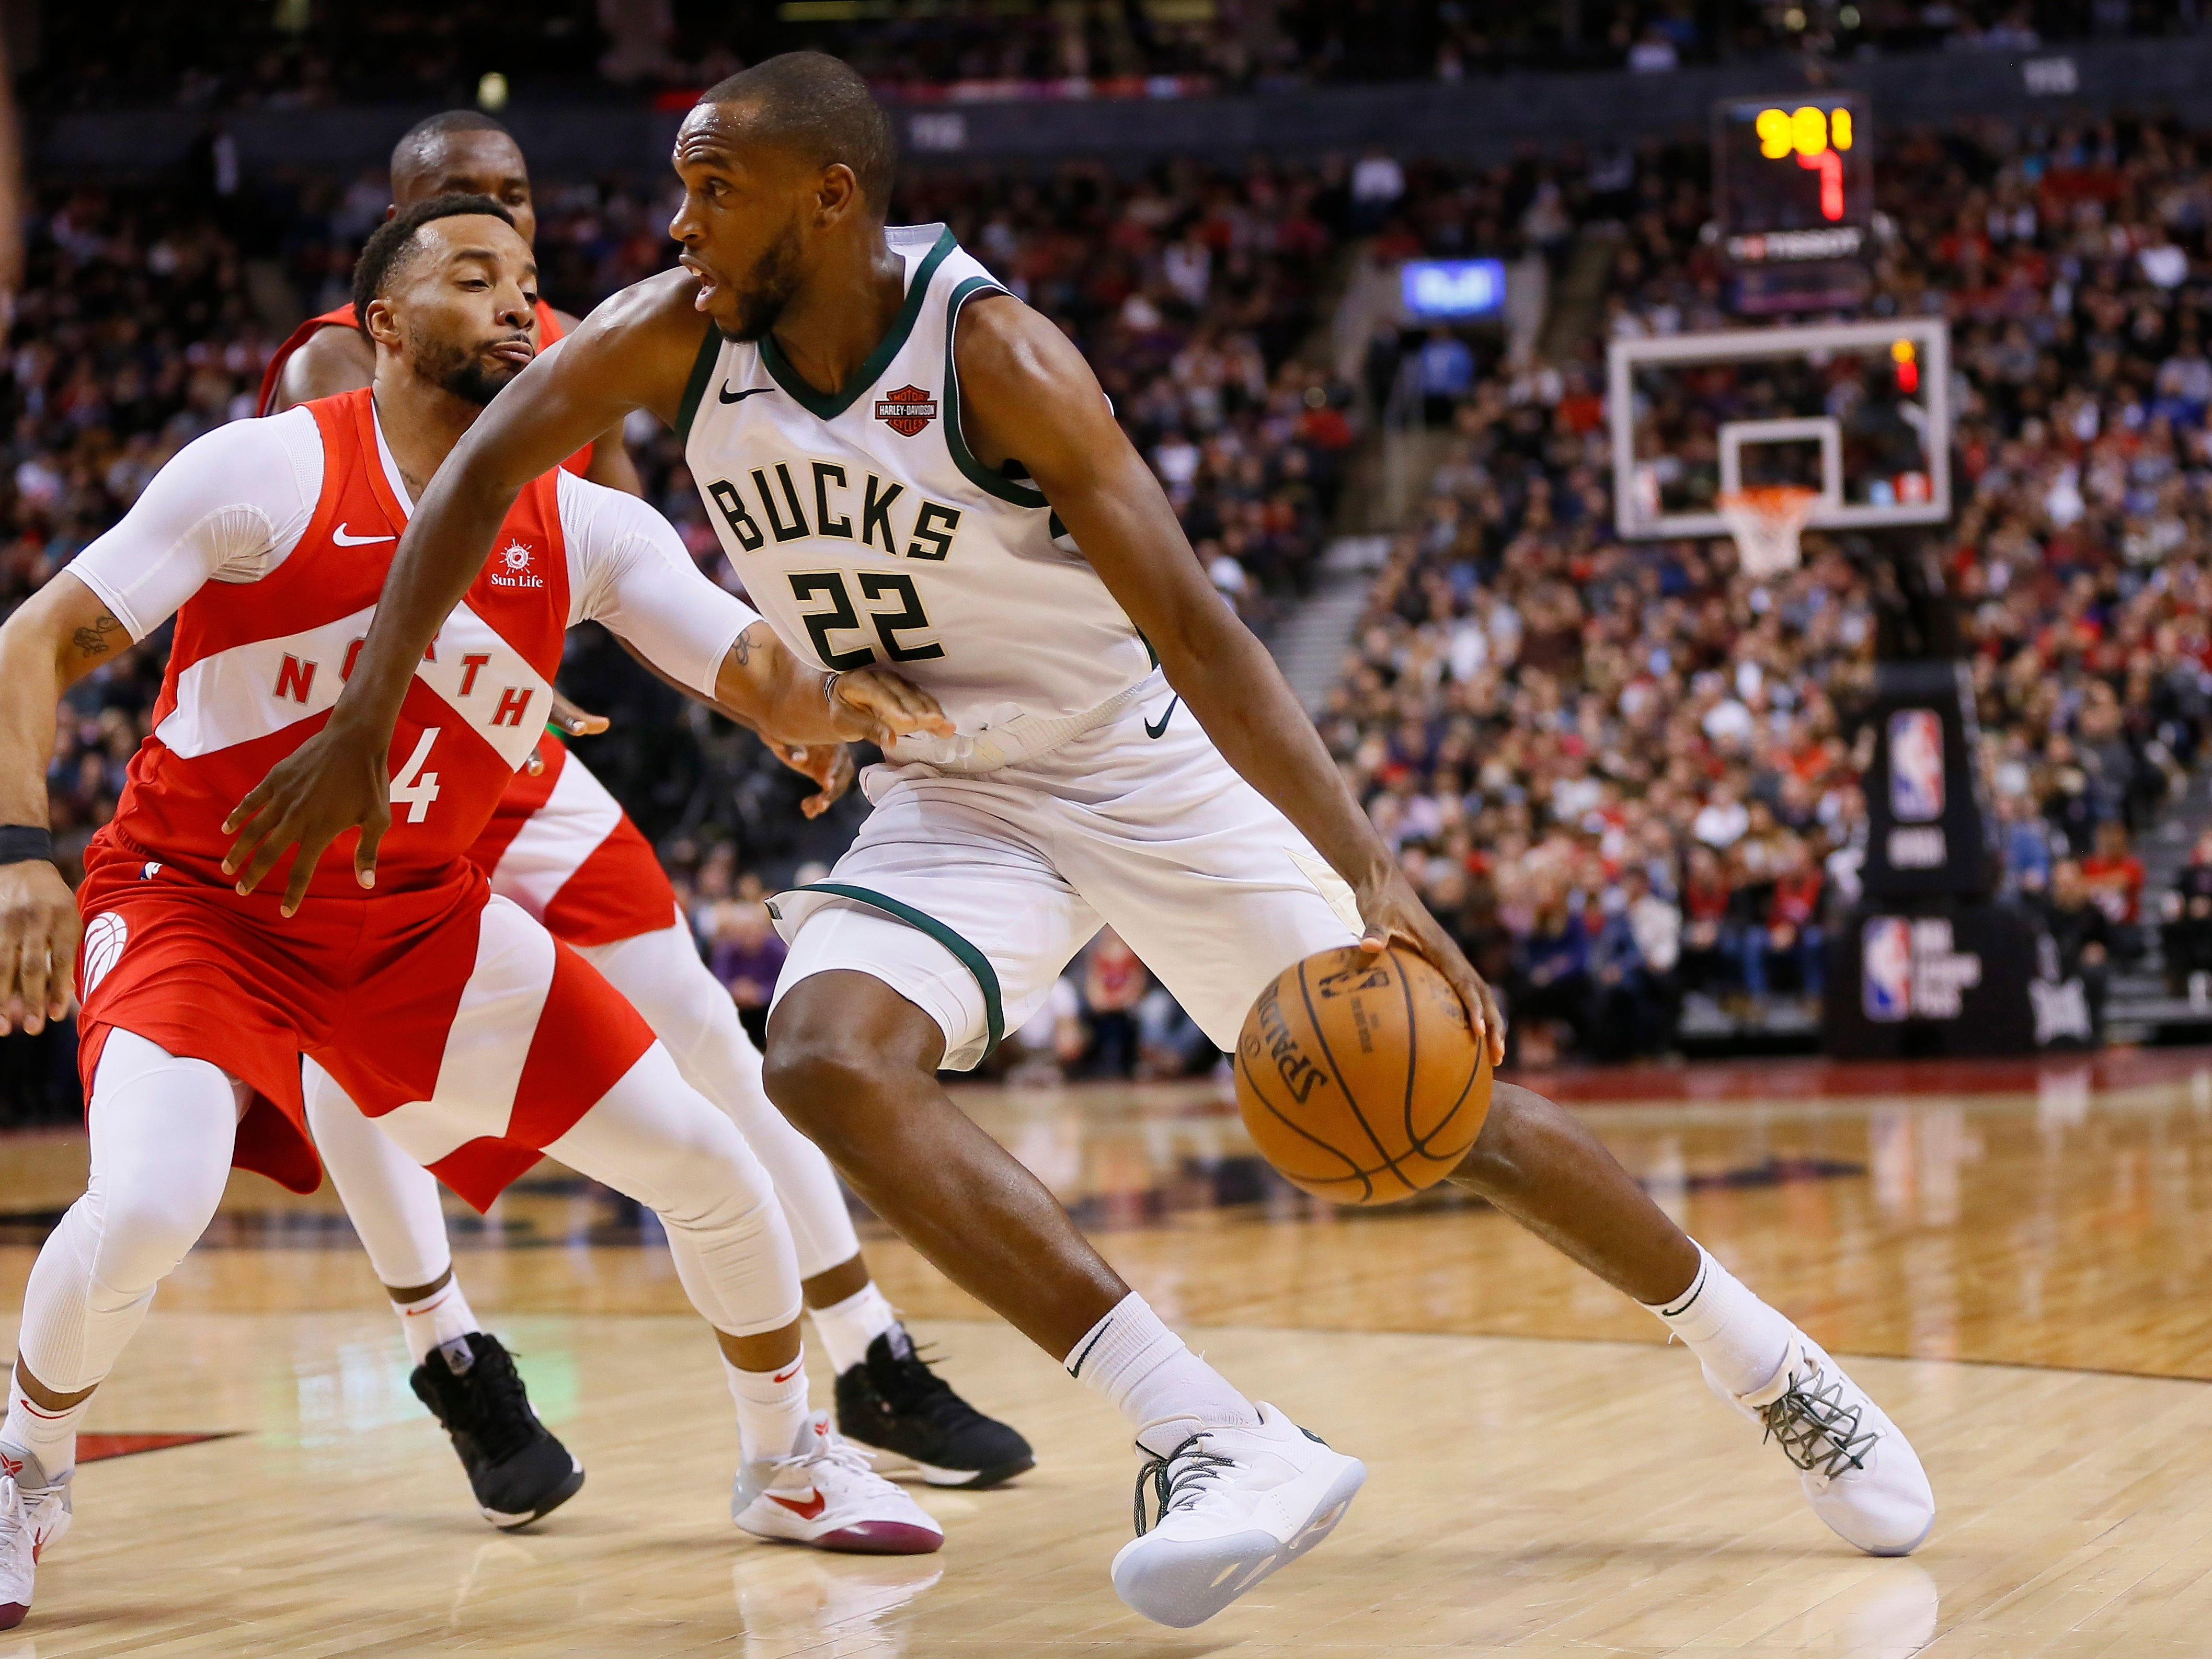 Bucks forward Khris Middleton, who finished with 18 points Thursday night, drives past Raptors guard Norman Powell during the second half.